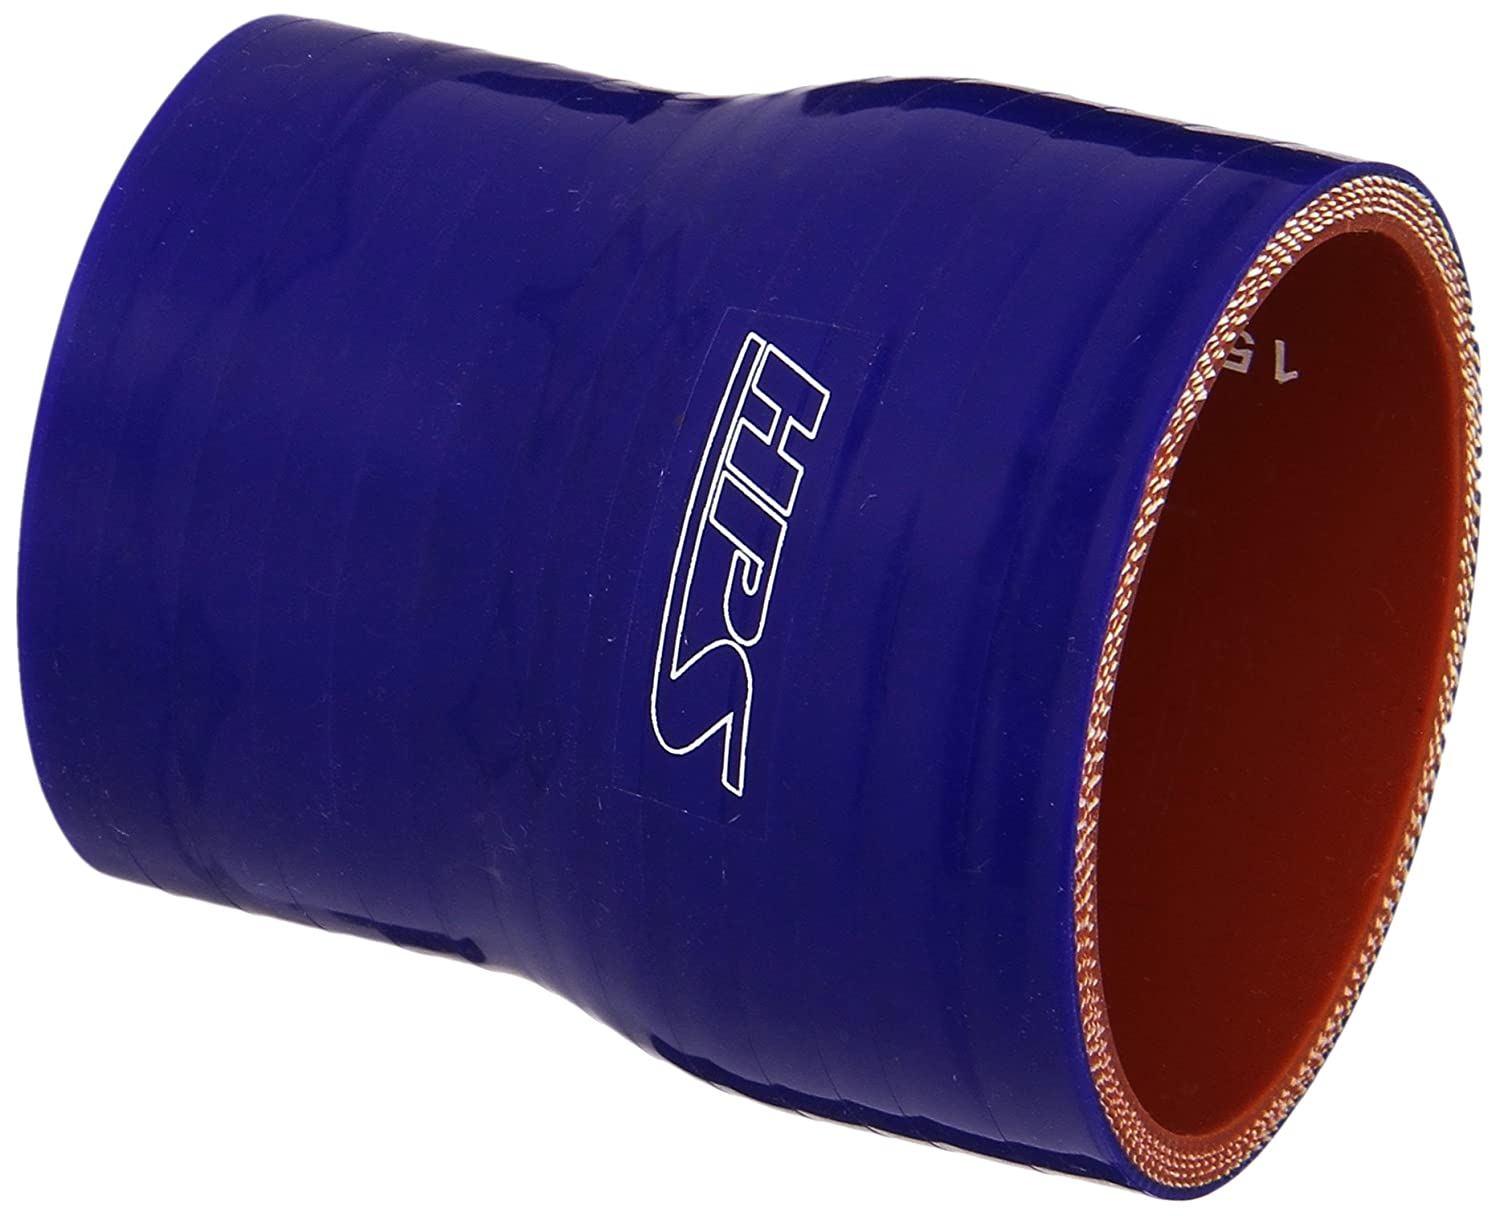 80 PSI Maximum Pressure 2  2-3//8 ID 3 Length HPS HTSR-200-238-BLUE Silicone High Temperature 4-ply Reinforced Reducer Coupler Hose Blue 3 Length 2  2-3//8 ID HPS Silicone Hoses